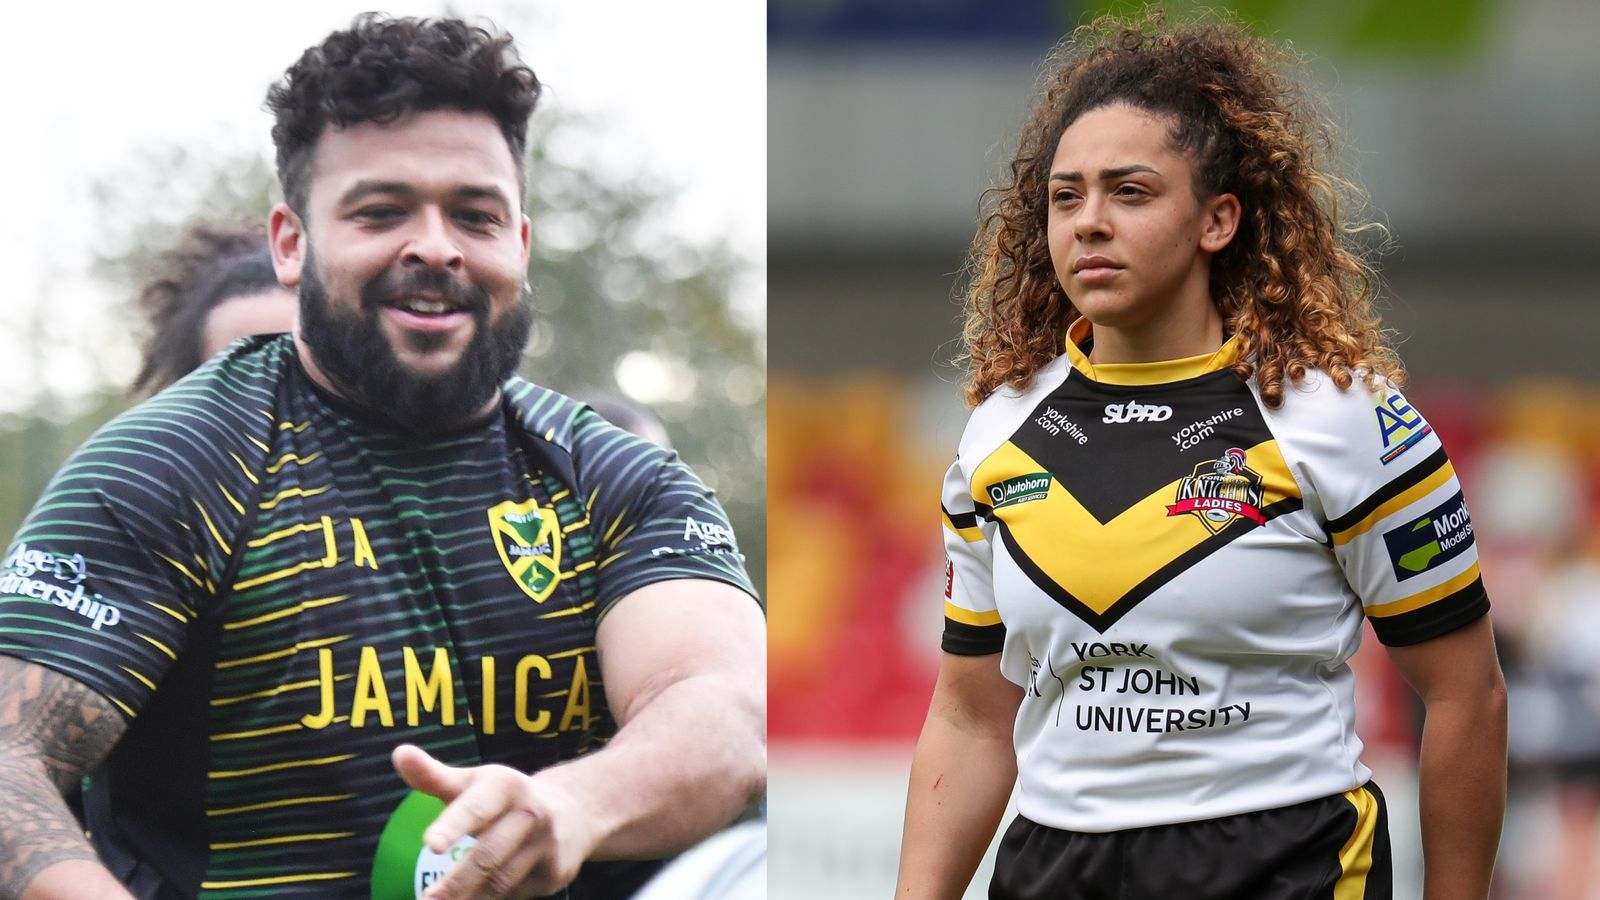 Rugby league siblings Savannah and Jordan Andrade set to take on the world